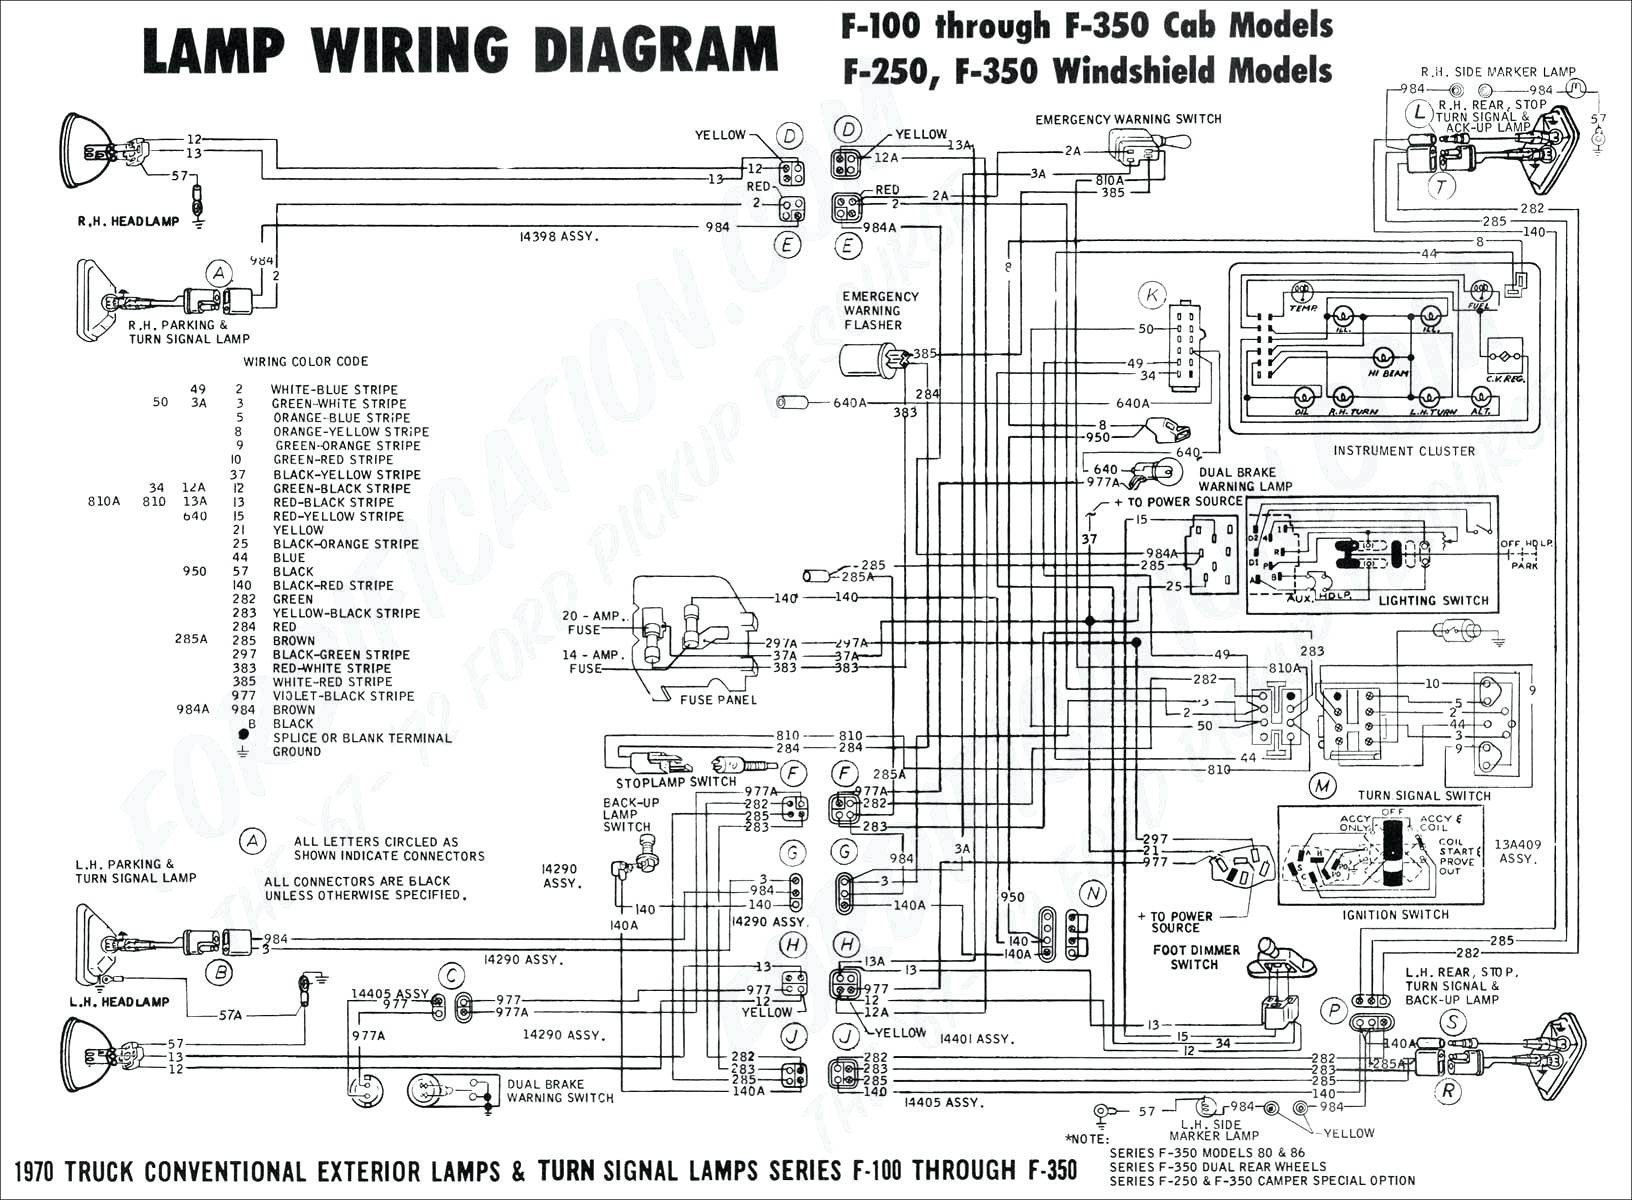 2013 F350 Tail Light Wiring Diagram FULL Version HD Quality Wiring Diagram  - VALEDIAGRAM.AS4A.FRAS4A.FR